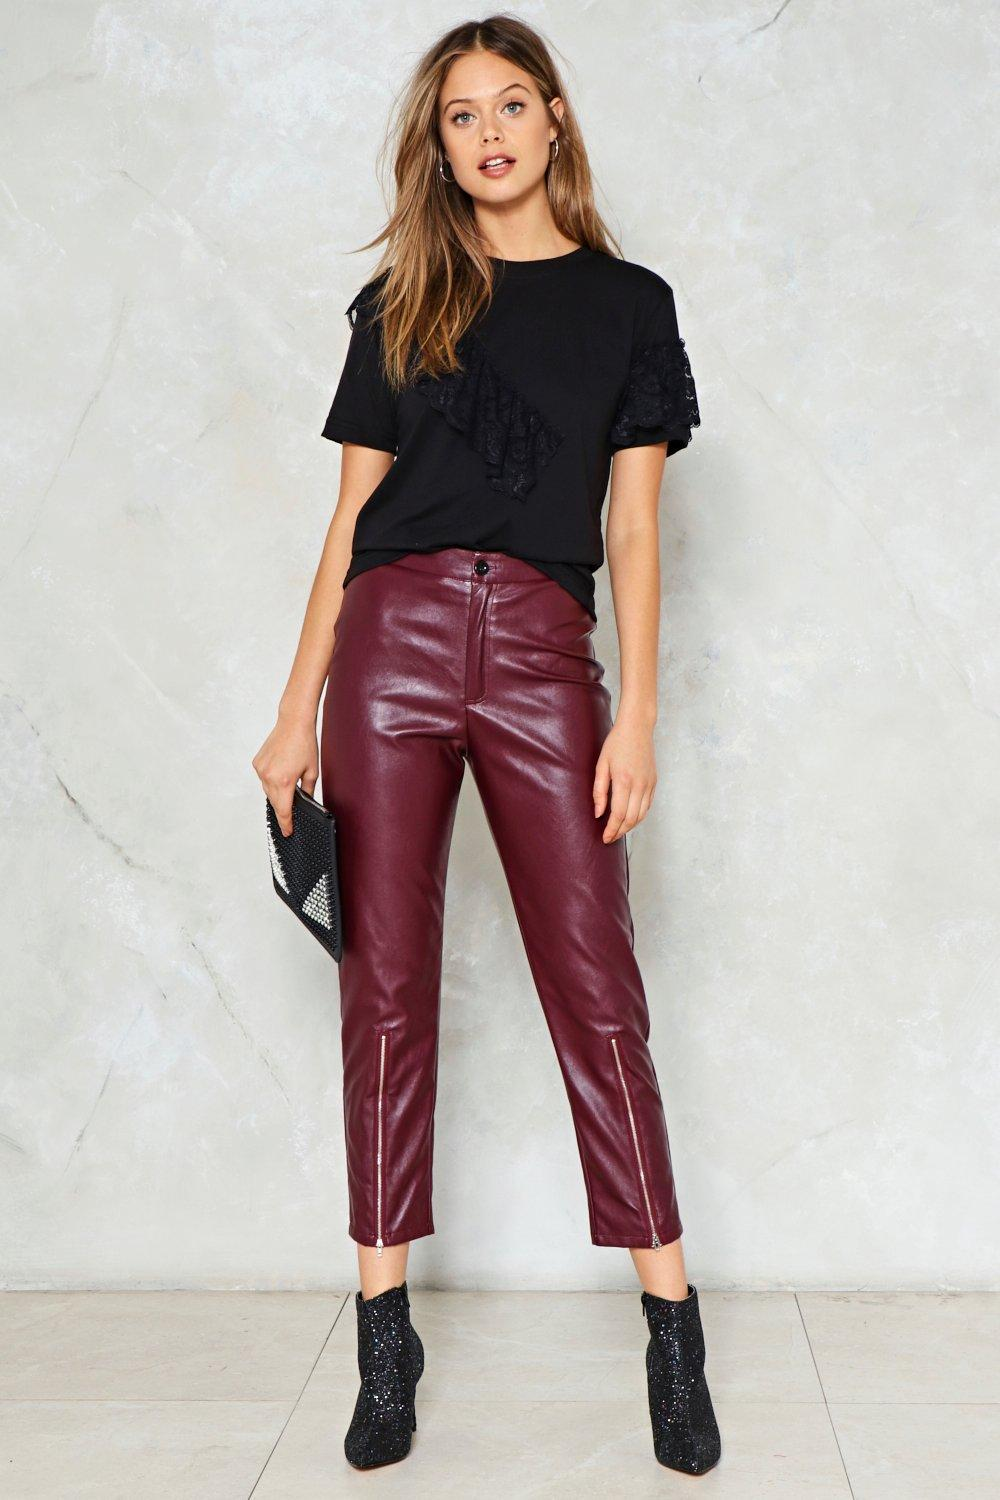 d36f2fde1772f9 Just Ride Faux Leather Pants | Shop Clothes at Nasty Gal!